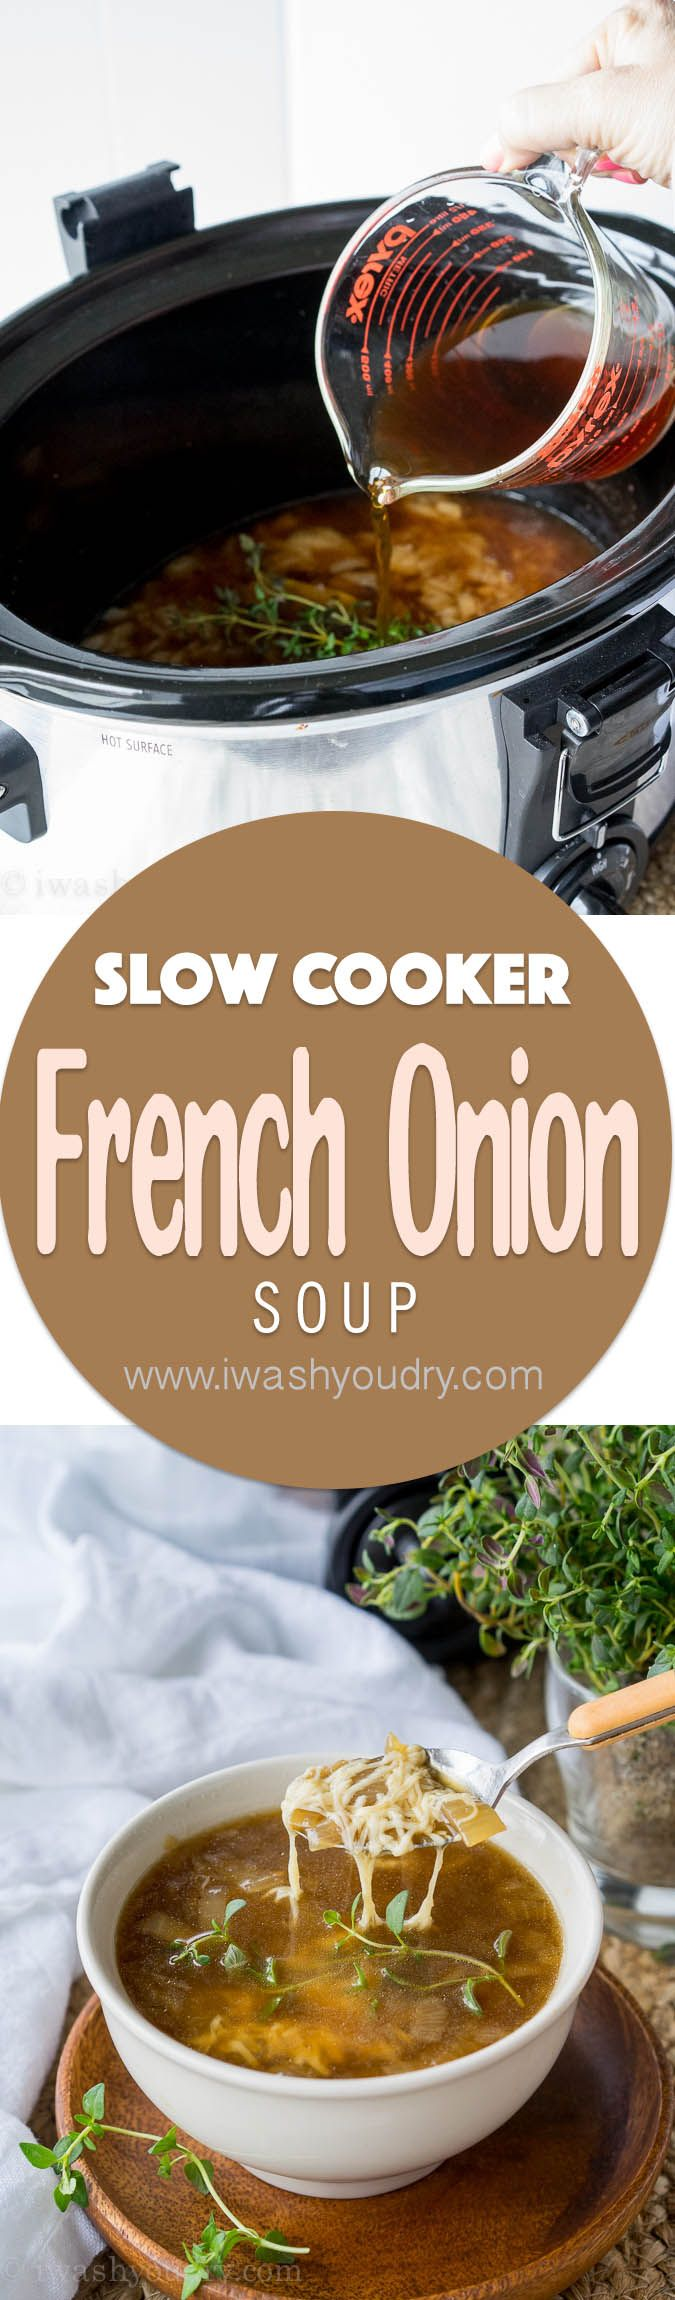 Not only is this Slow Cooker French Onion Soup easy to prepare, but it's also on the healthy side! Perfect for keeping my resolutions and still being able to enjoy my favorite comfort foods!